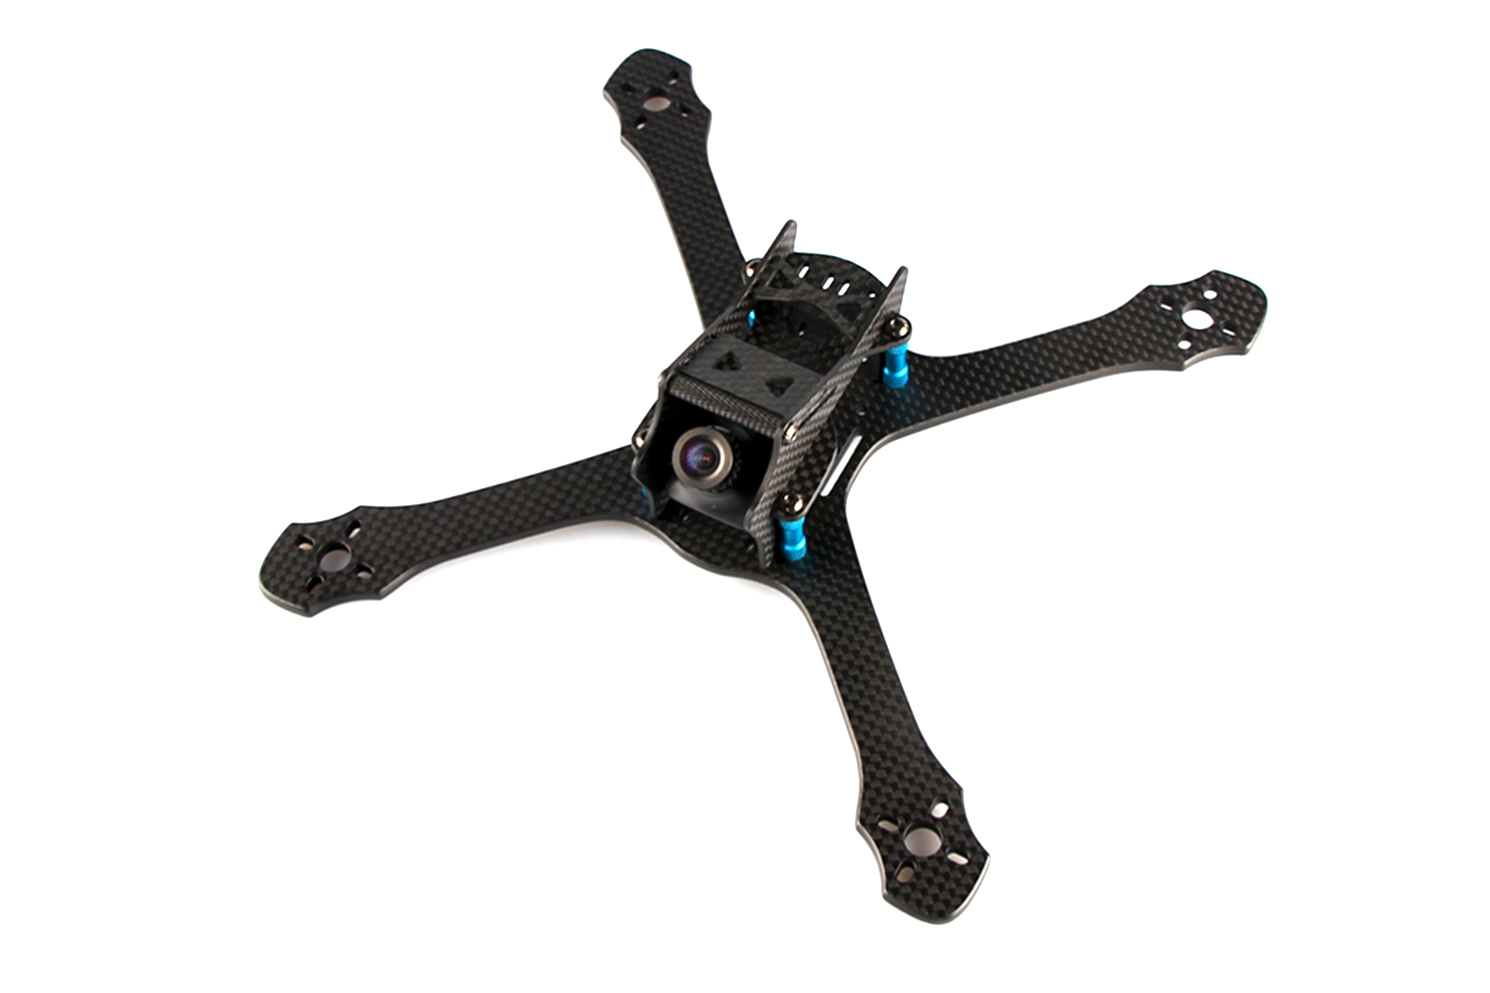 AstroX Frames Japanese Carbon Switch TrueXS and the Freestyle X5 FPV kit UK Official Dealer